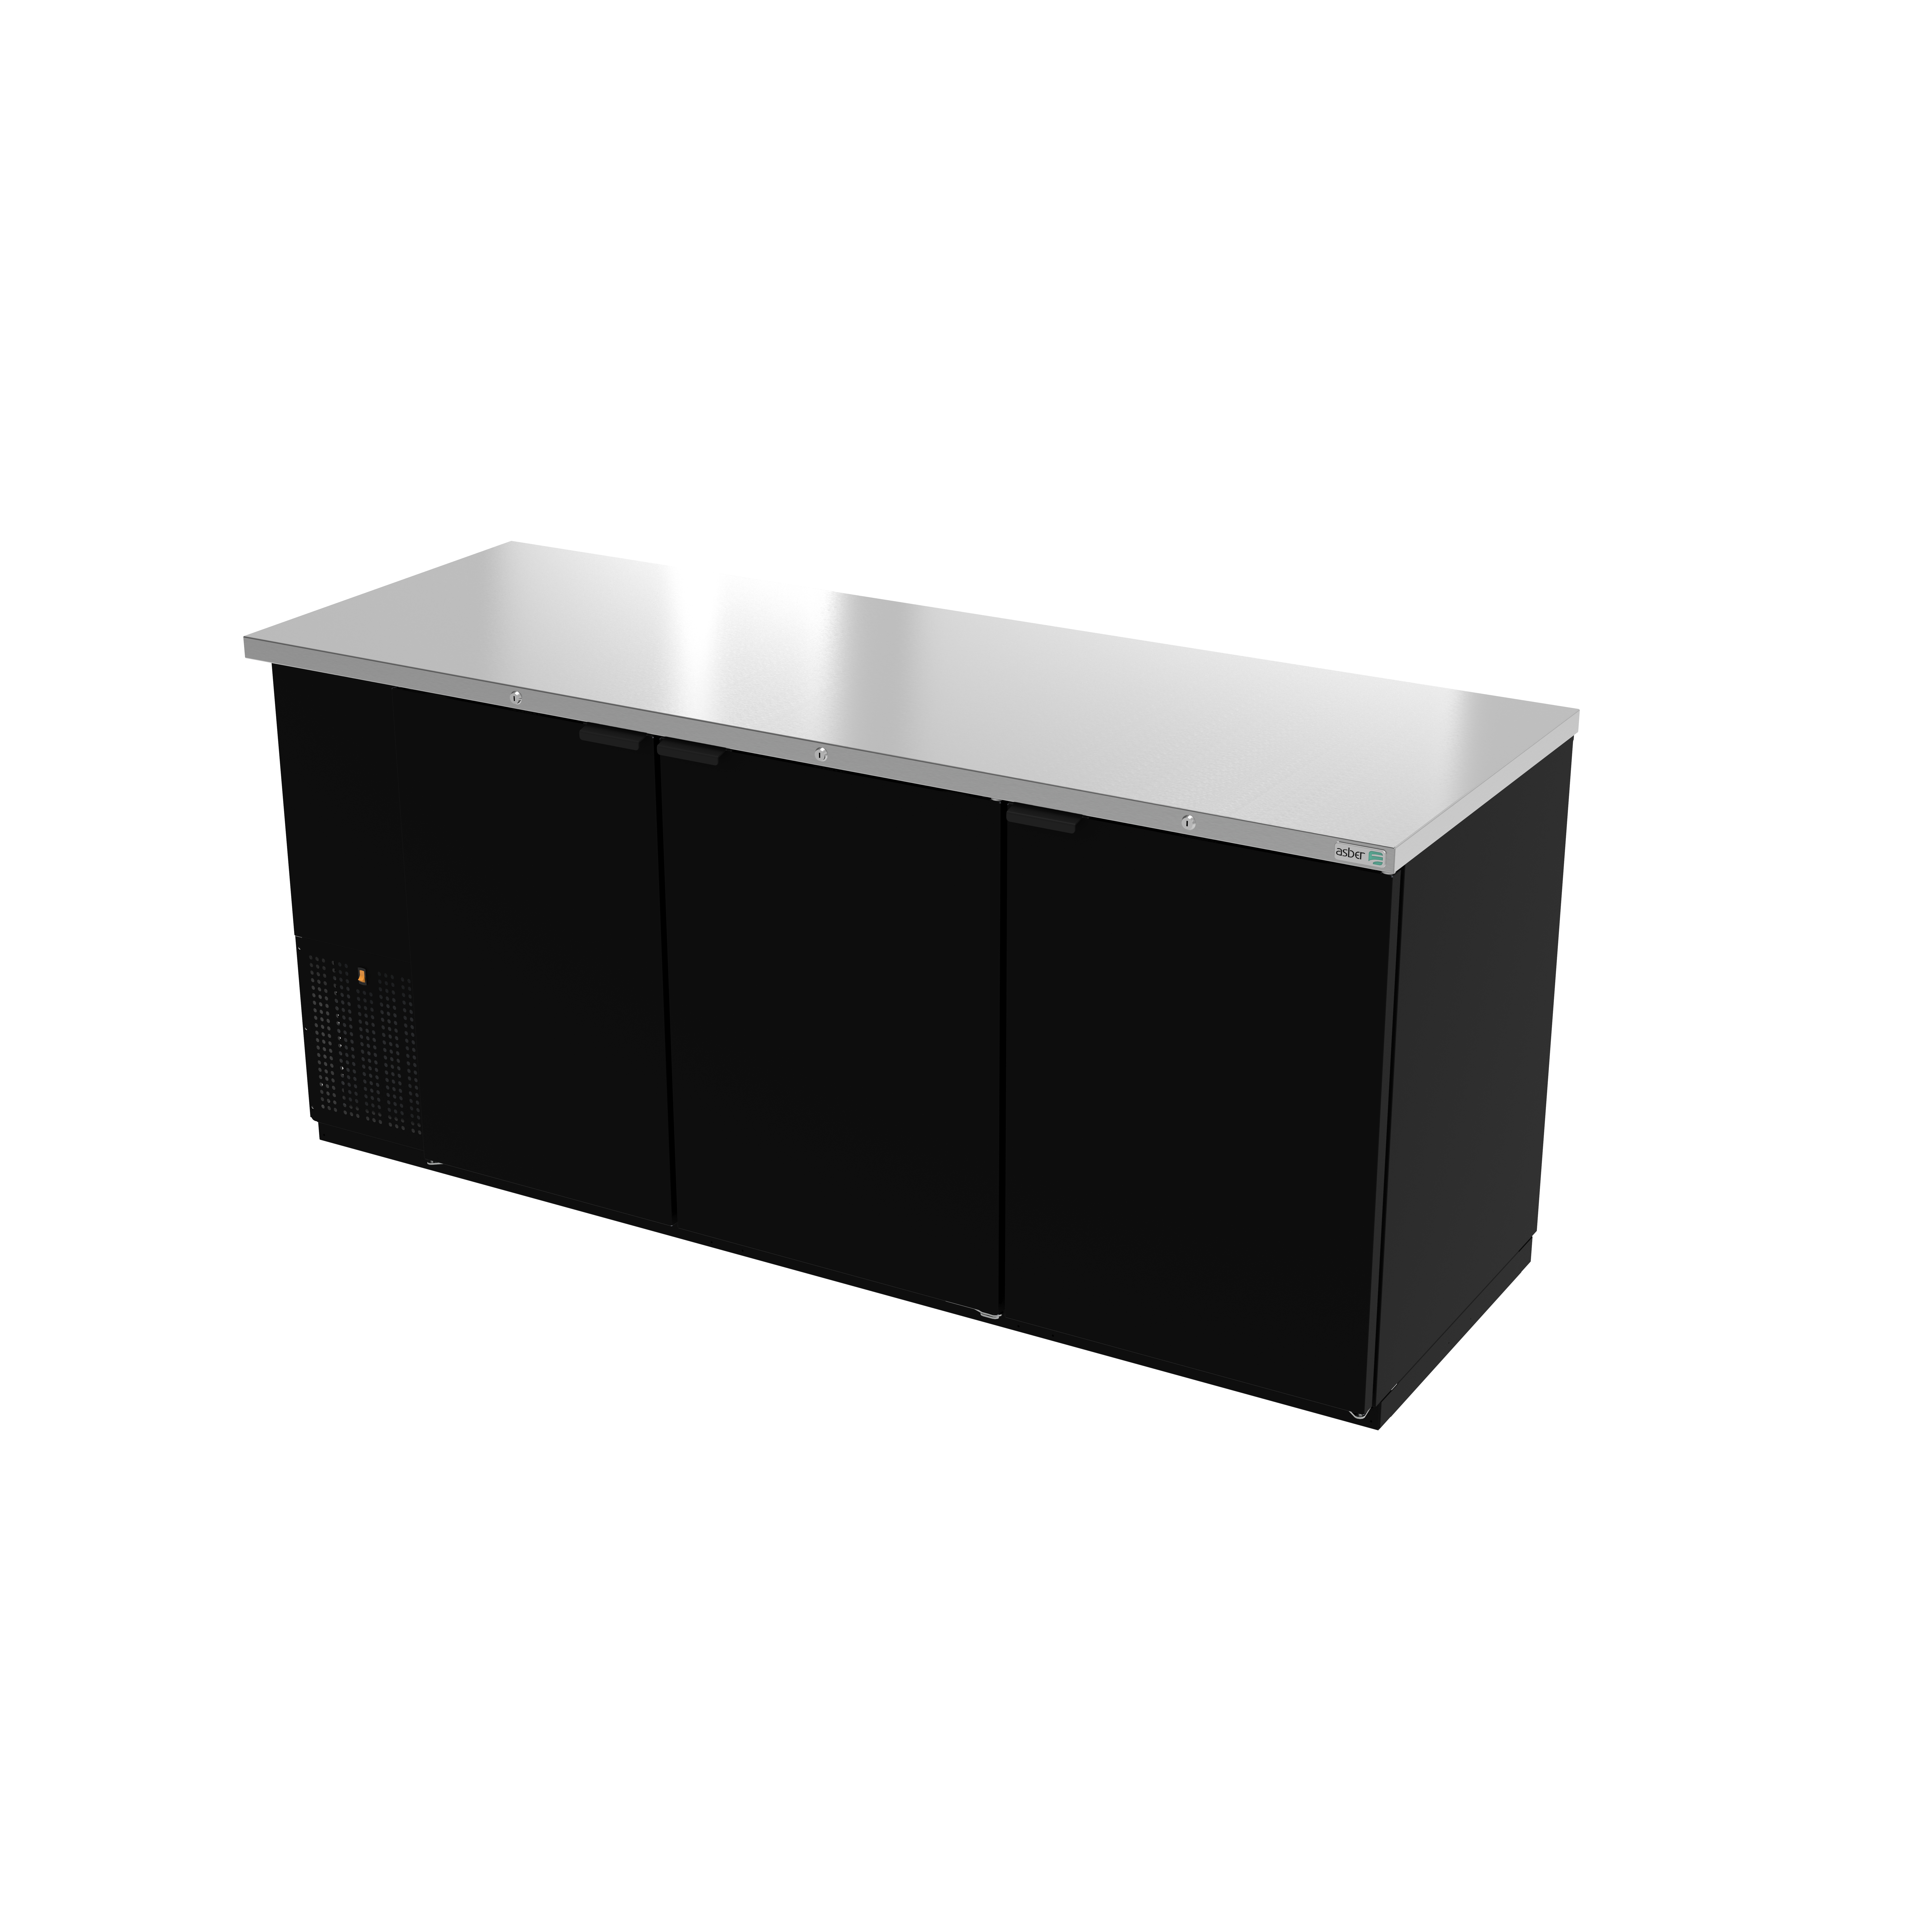 Asber ABBC-78 back bar cabinet, refrigerated